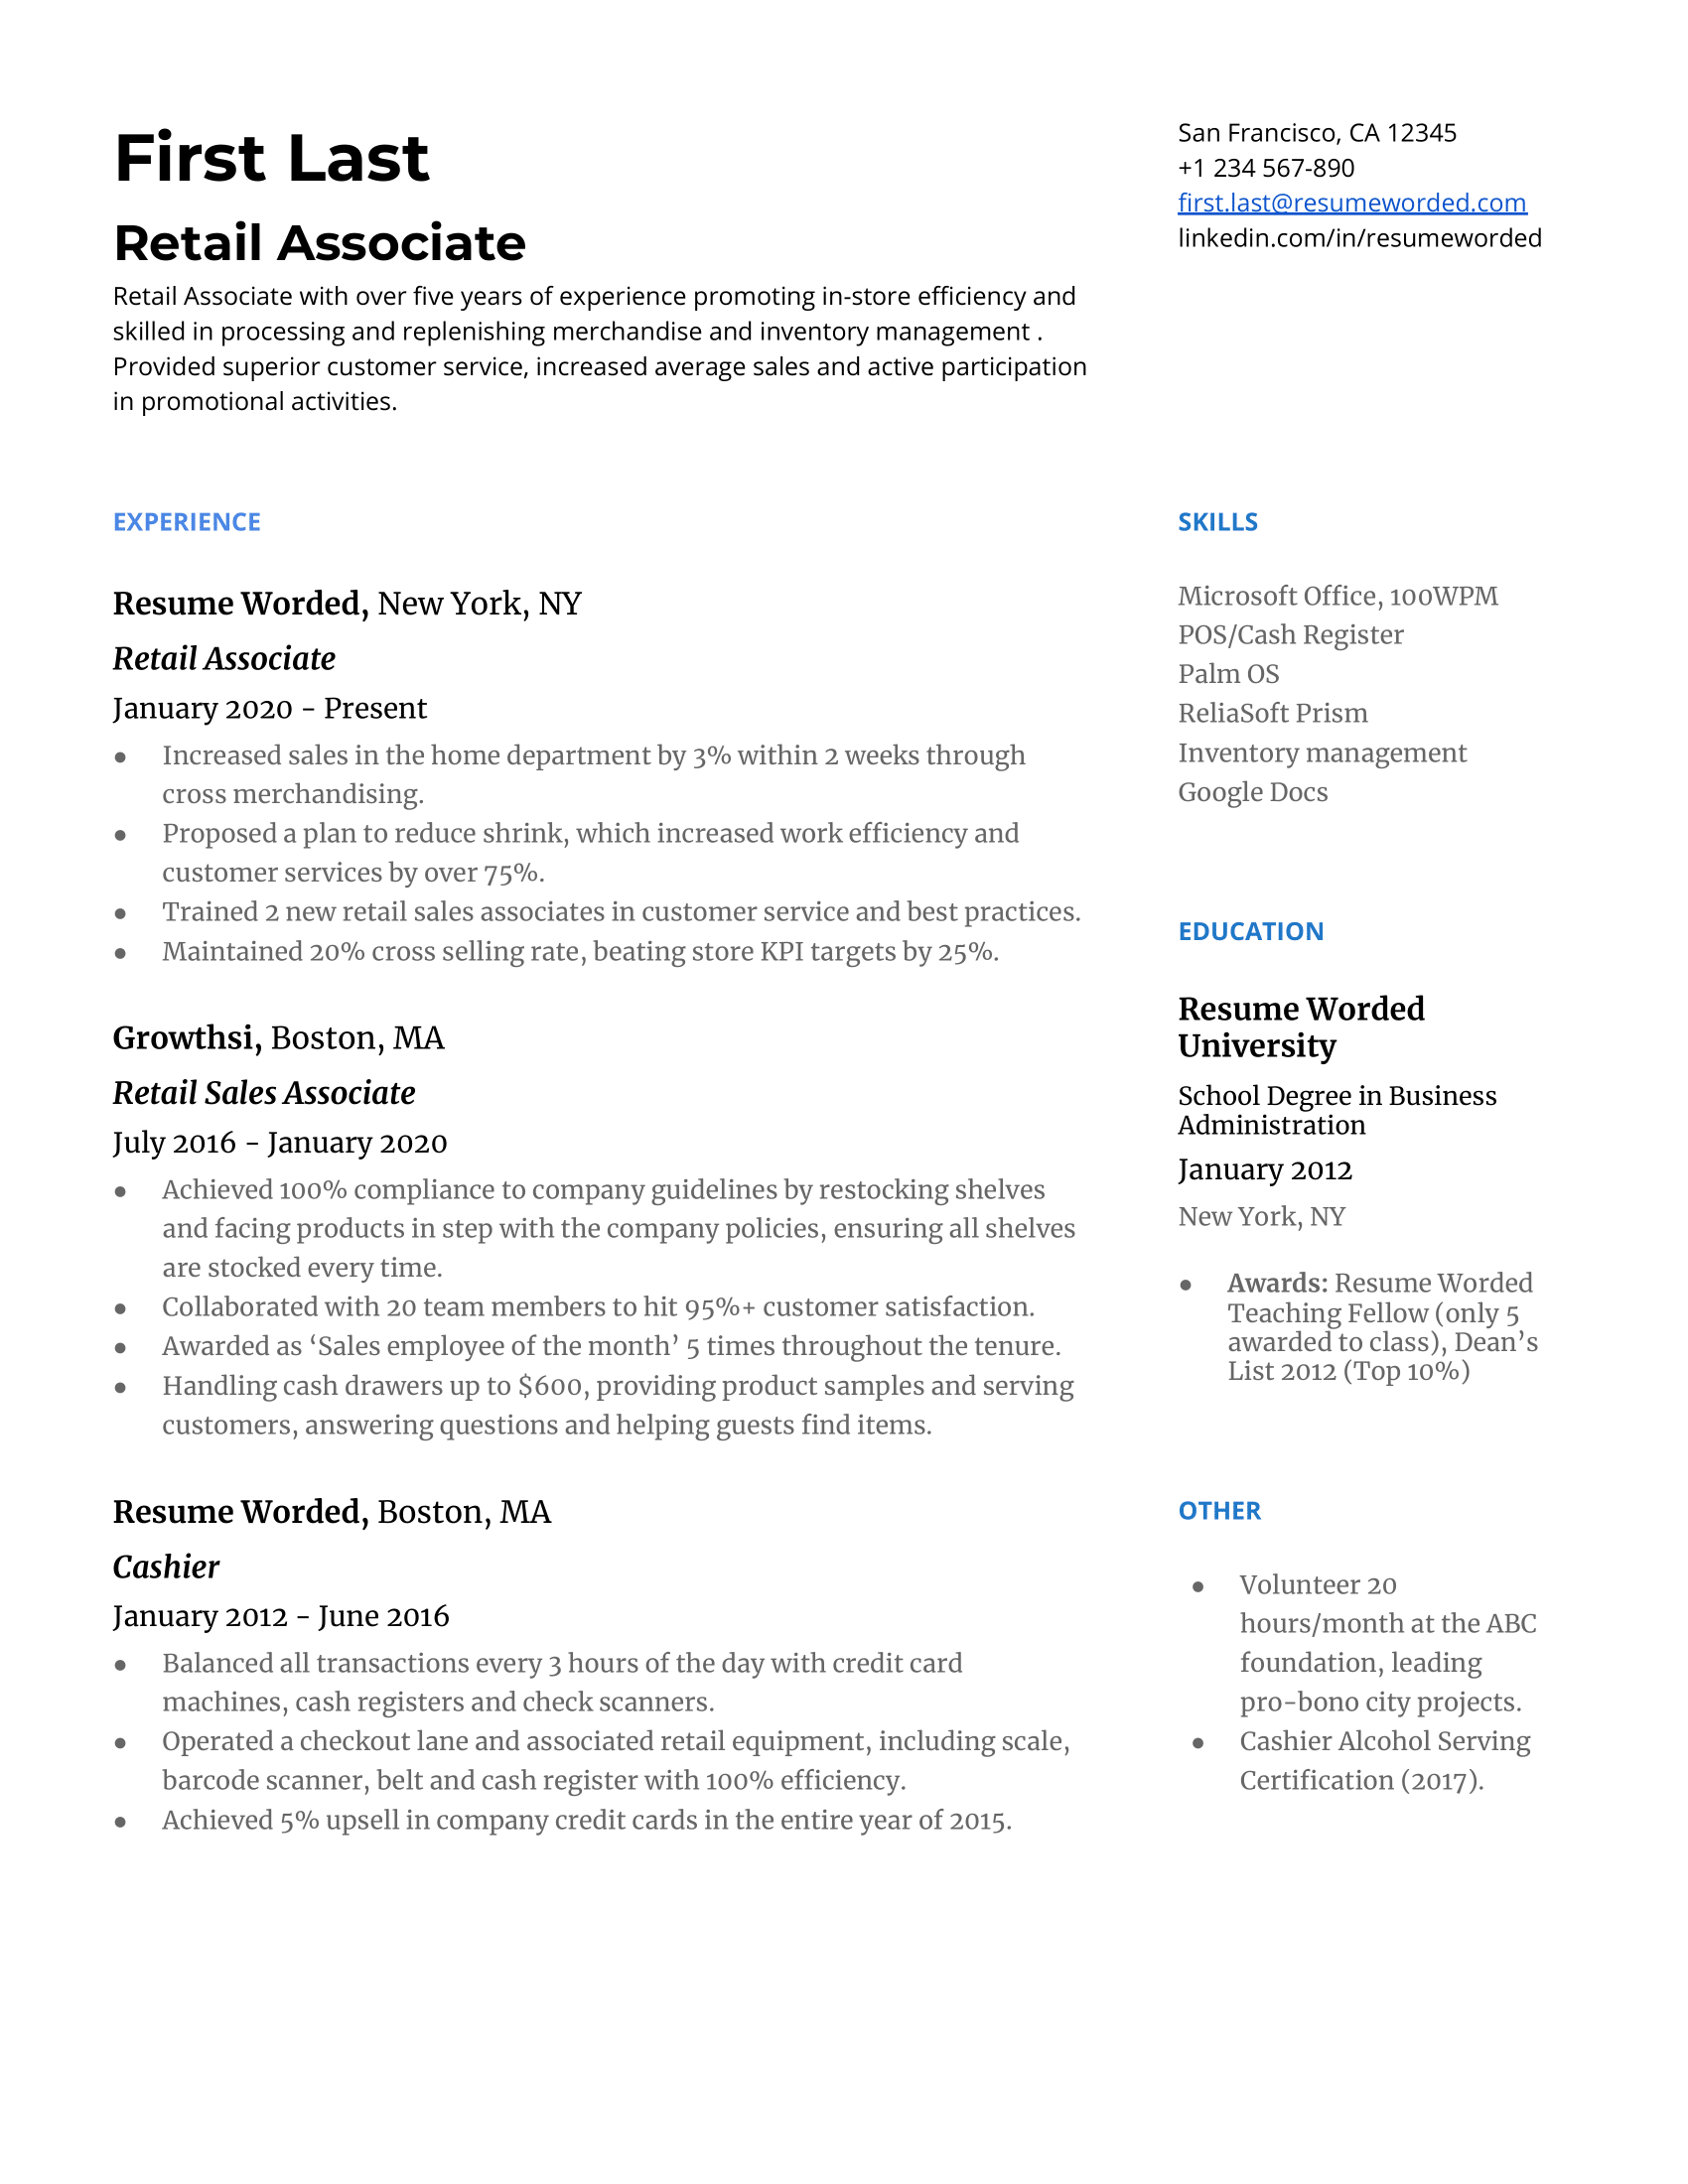 Retial resume best essays ghostwriter for hire for school